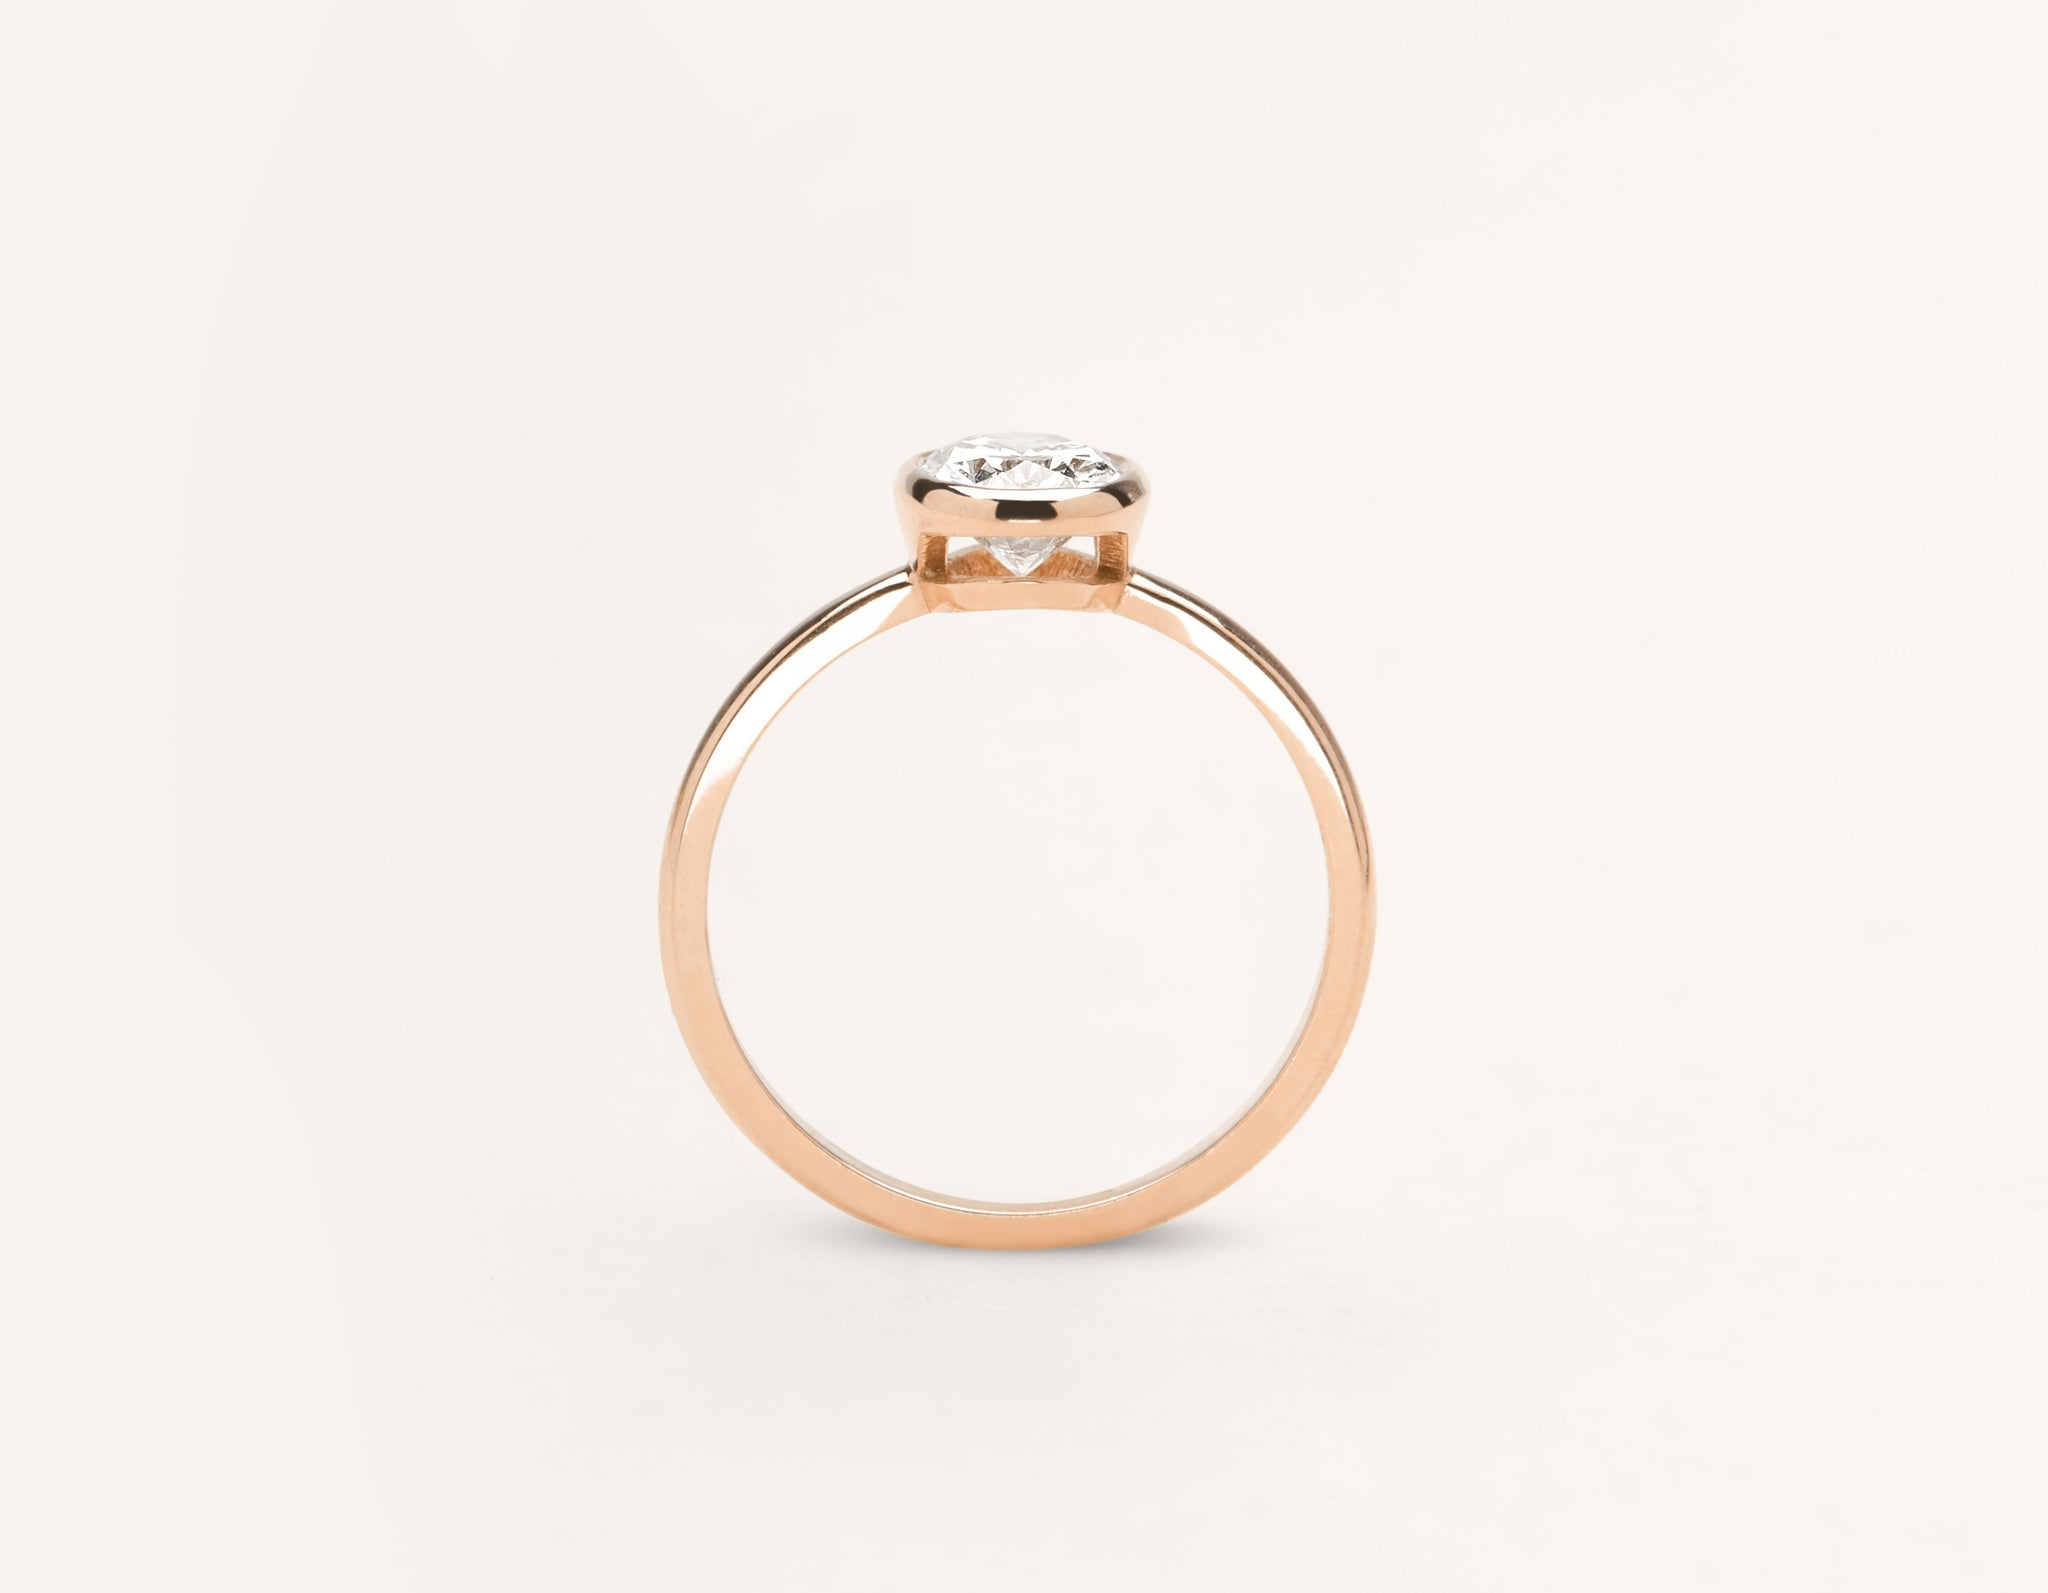 Vrai and Oro modern classic Oval Bezel diamond engagement ring 18k solid rose gold sustainable jewelry